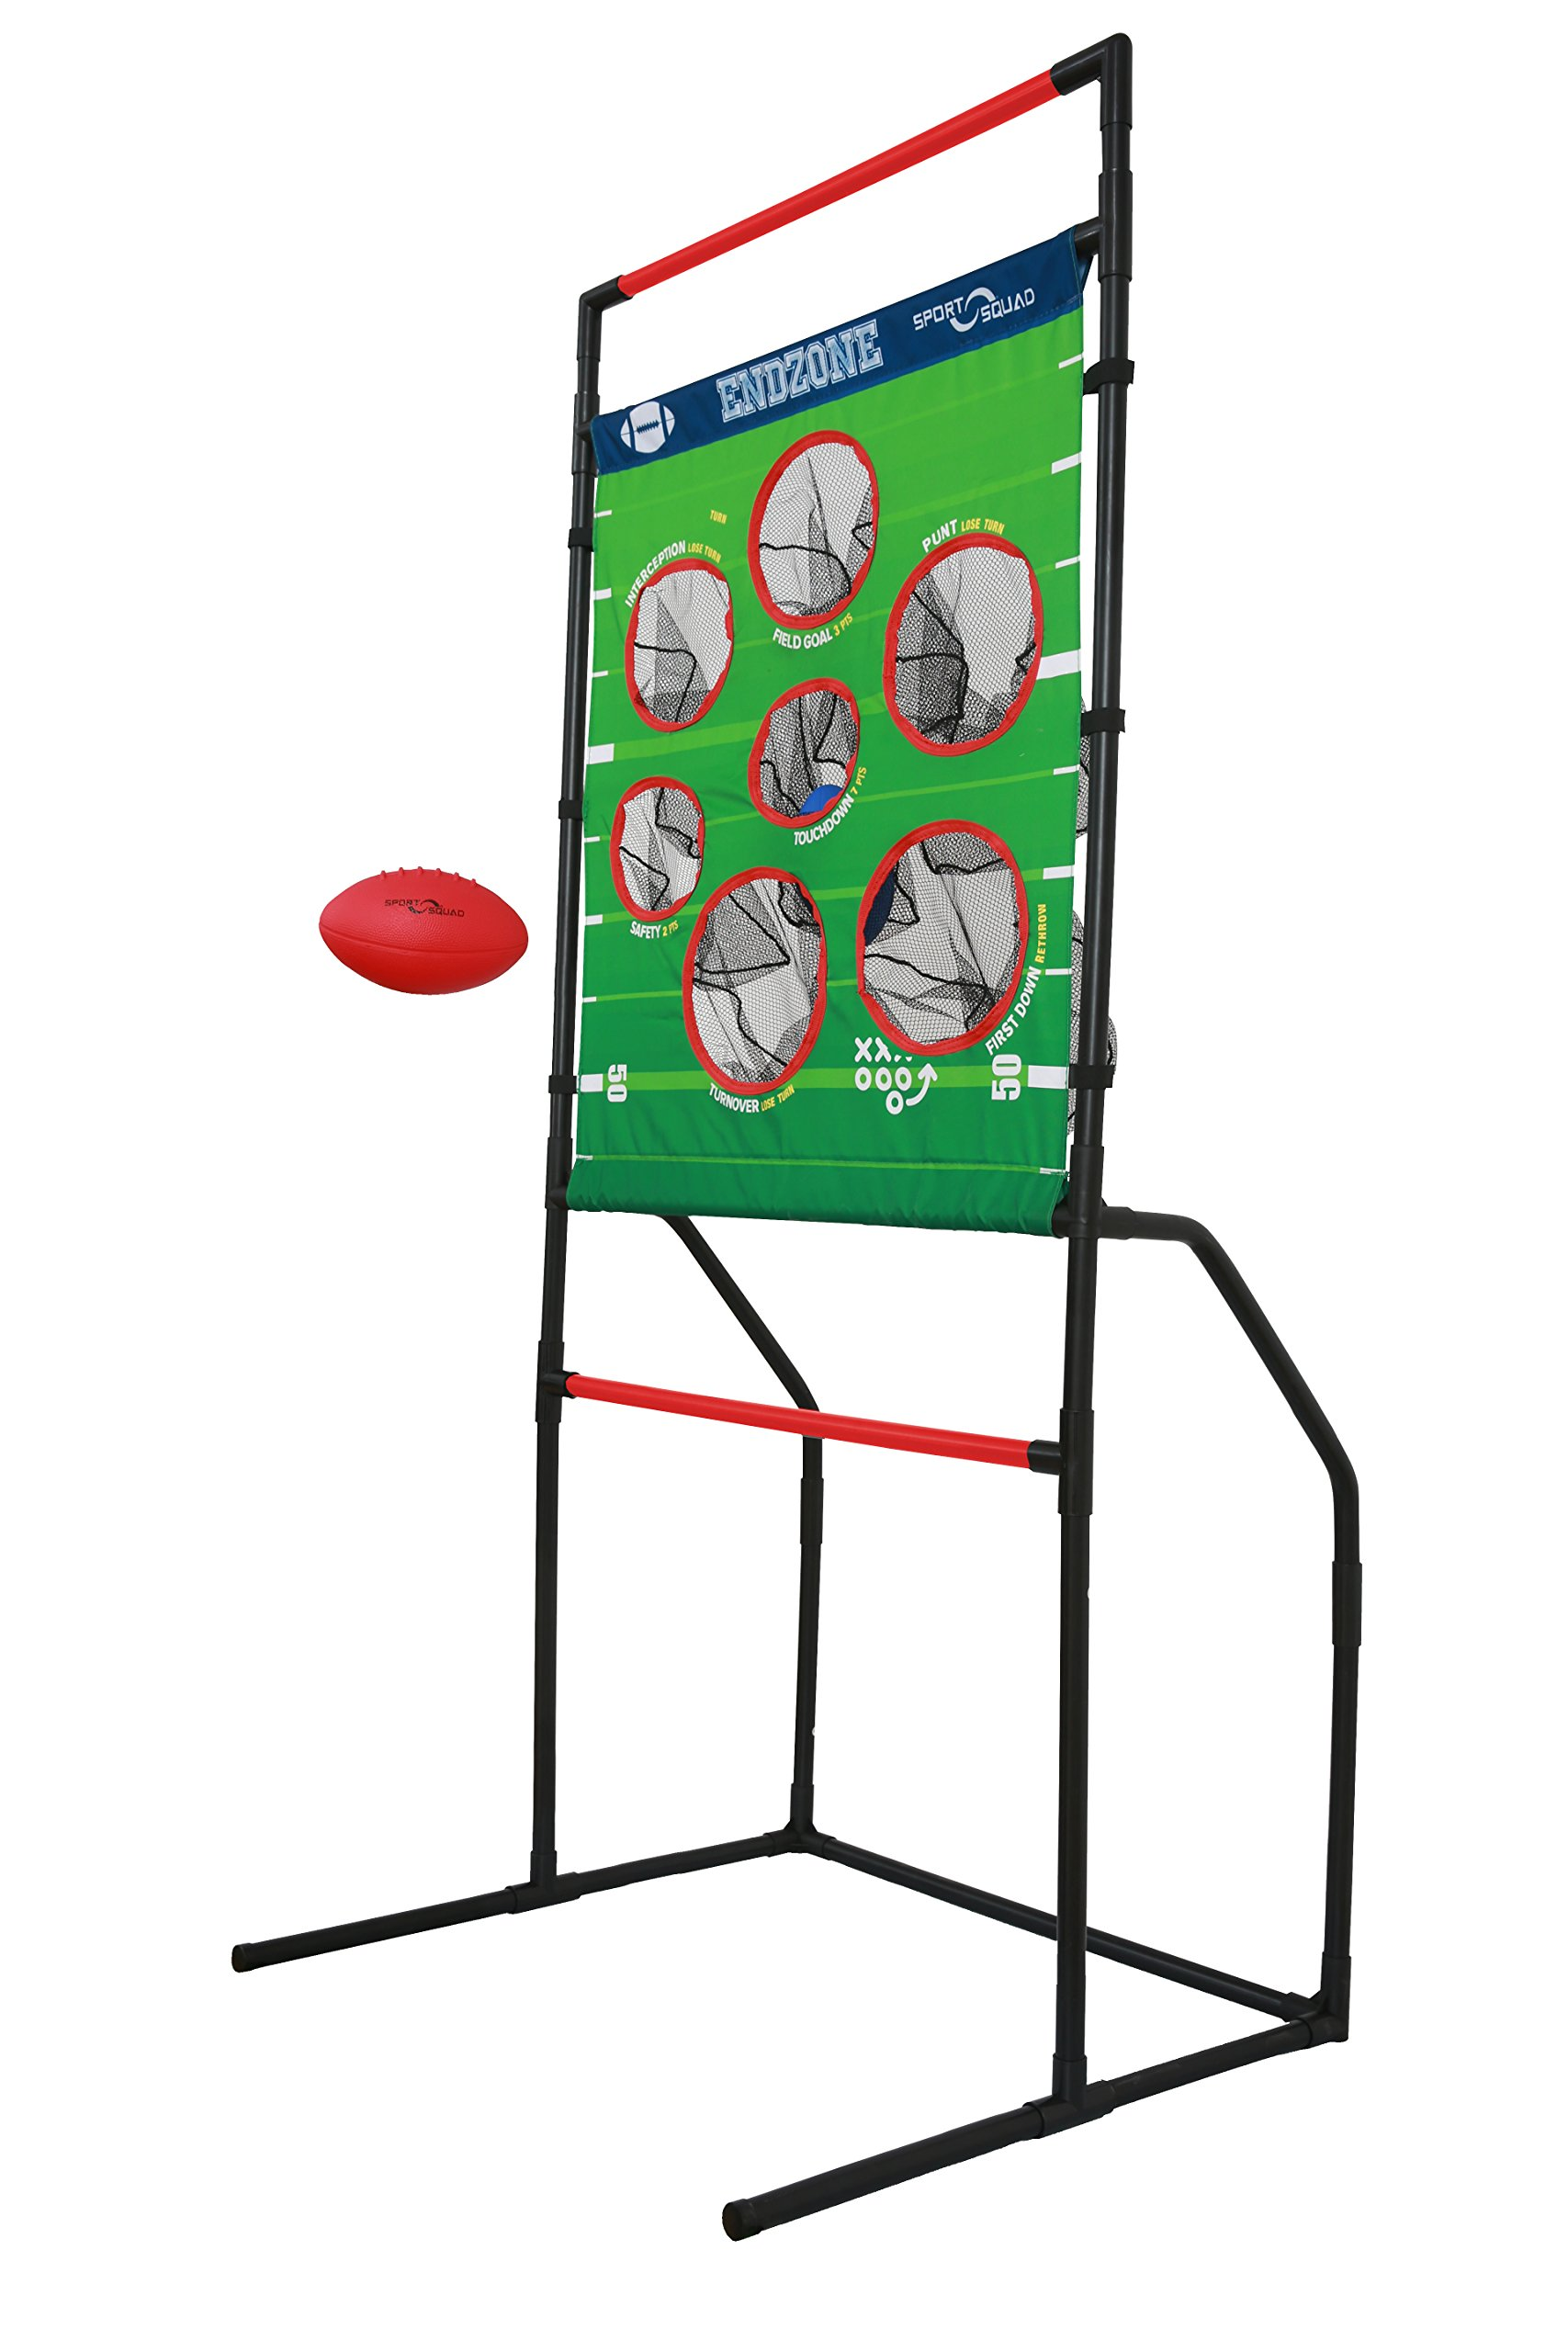 Sport Squad 2-in-1 Football and Disc Toss EndZone Challenge Backyard and Lawn Game for Indoor/Outdoor Use